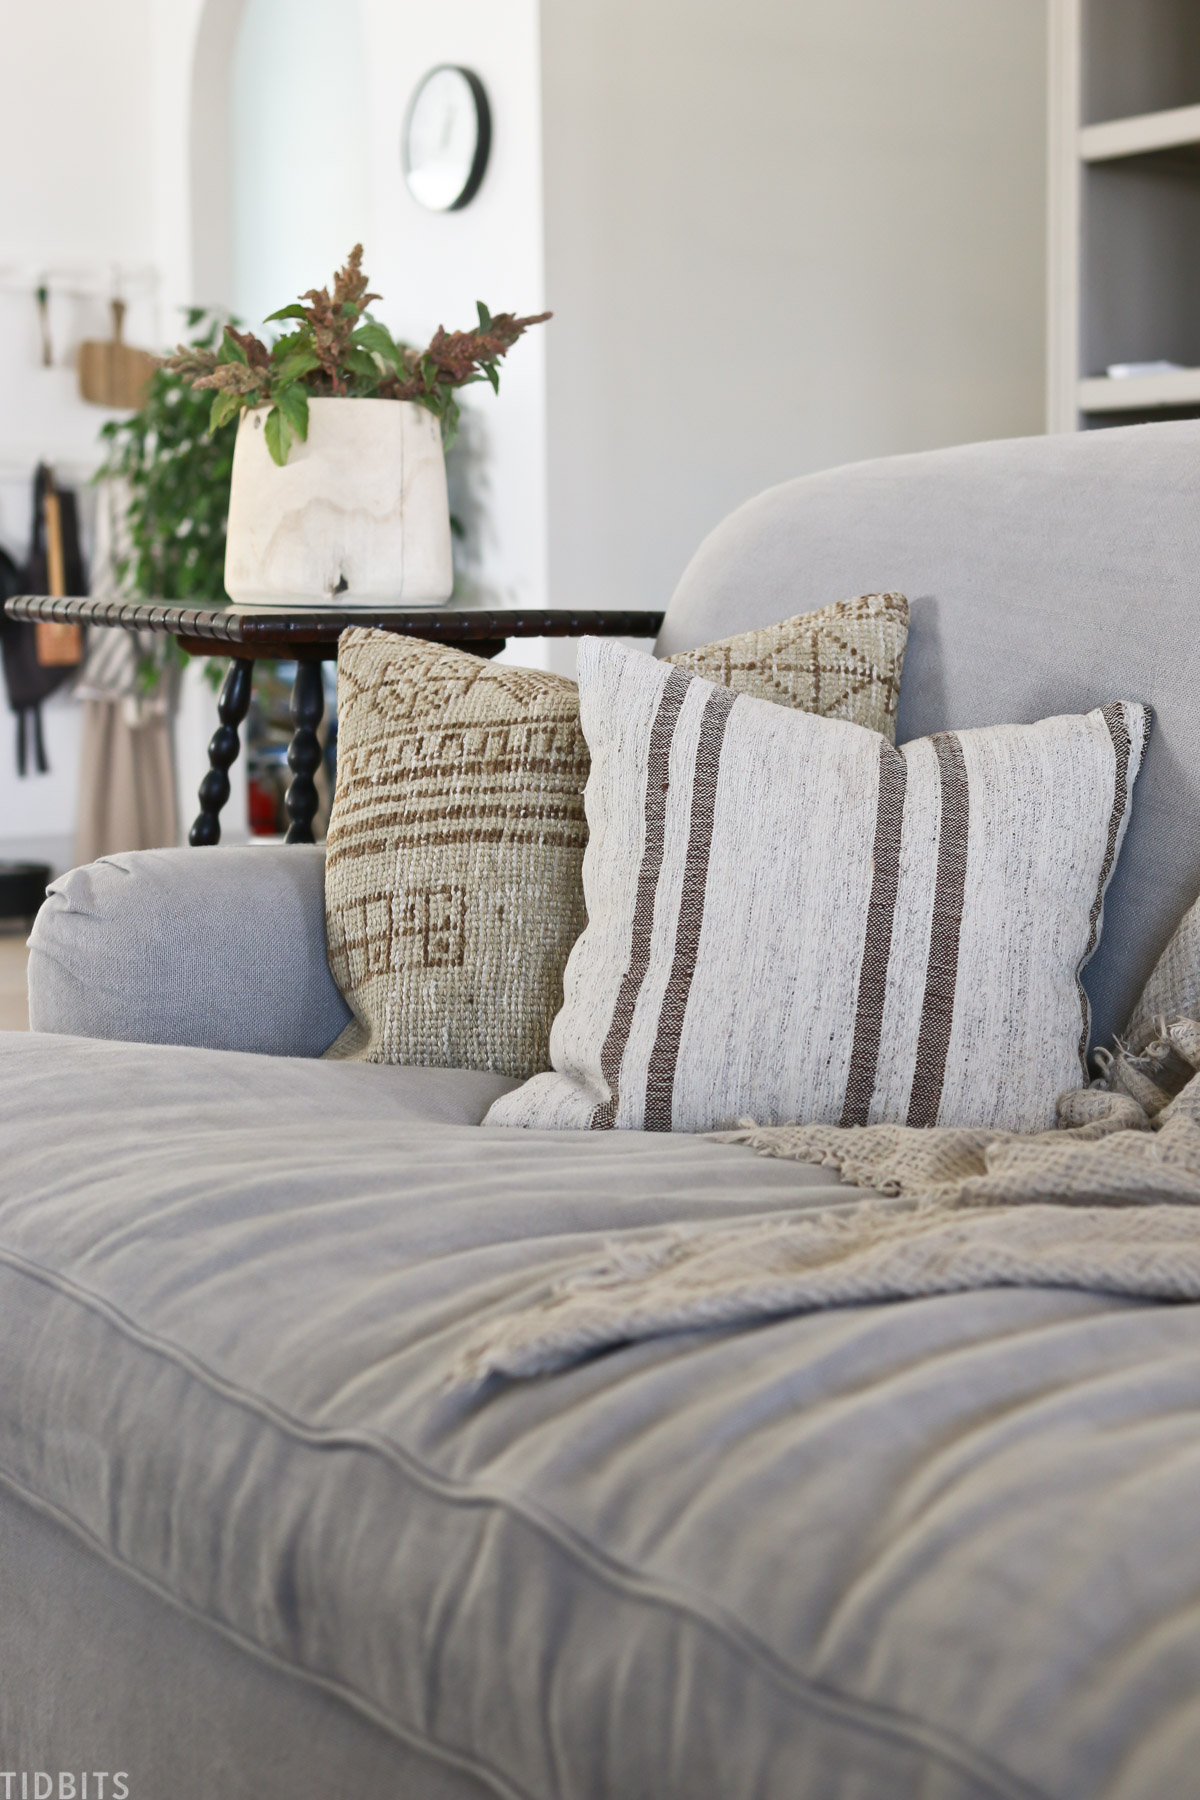 Fall Home Decor Ideas 5 Quick And Easy Swaps To Cozy Up Your Home